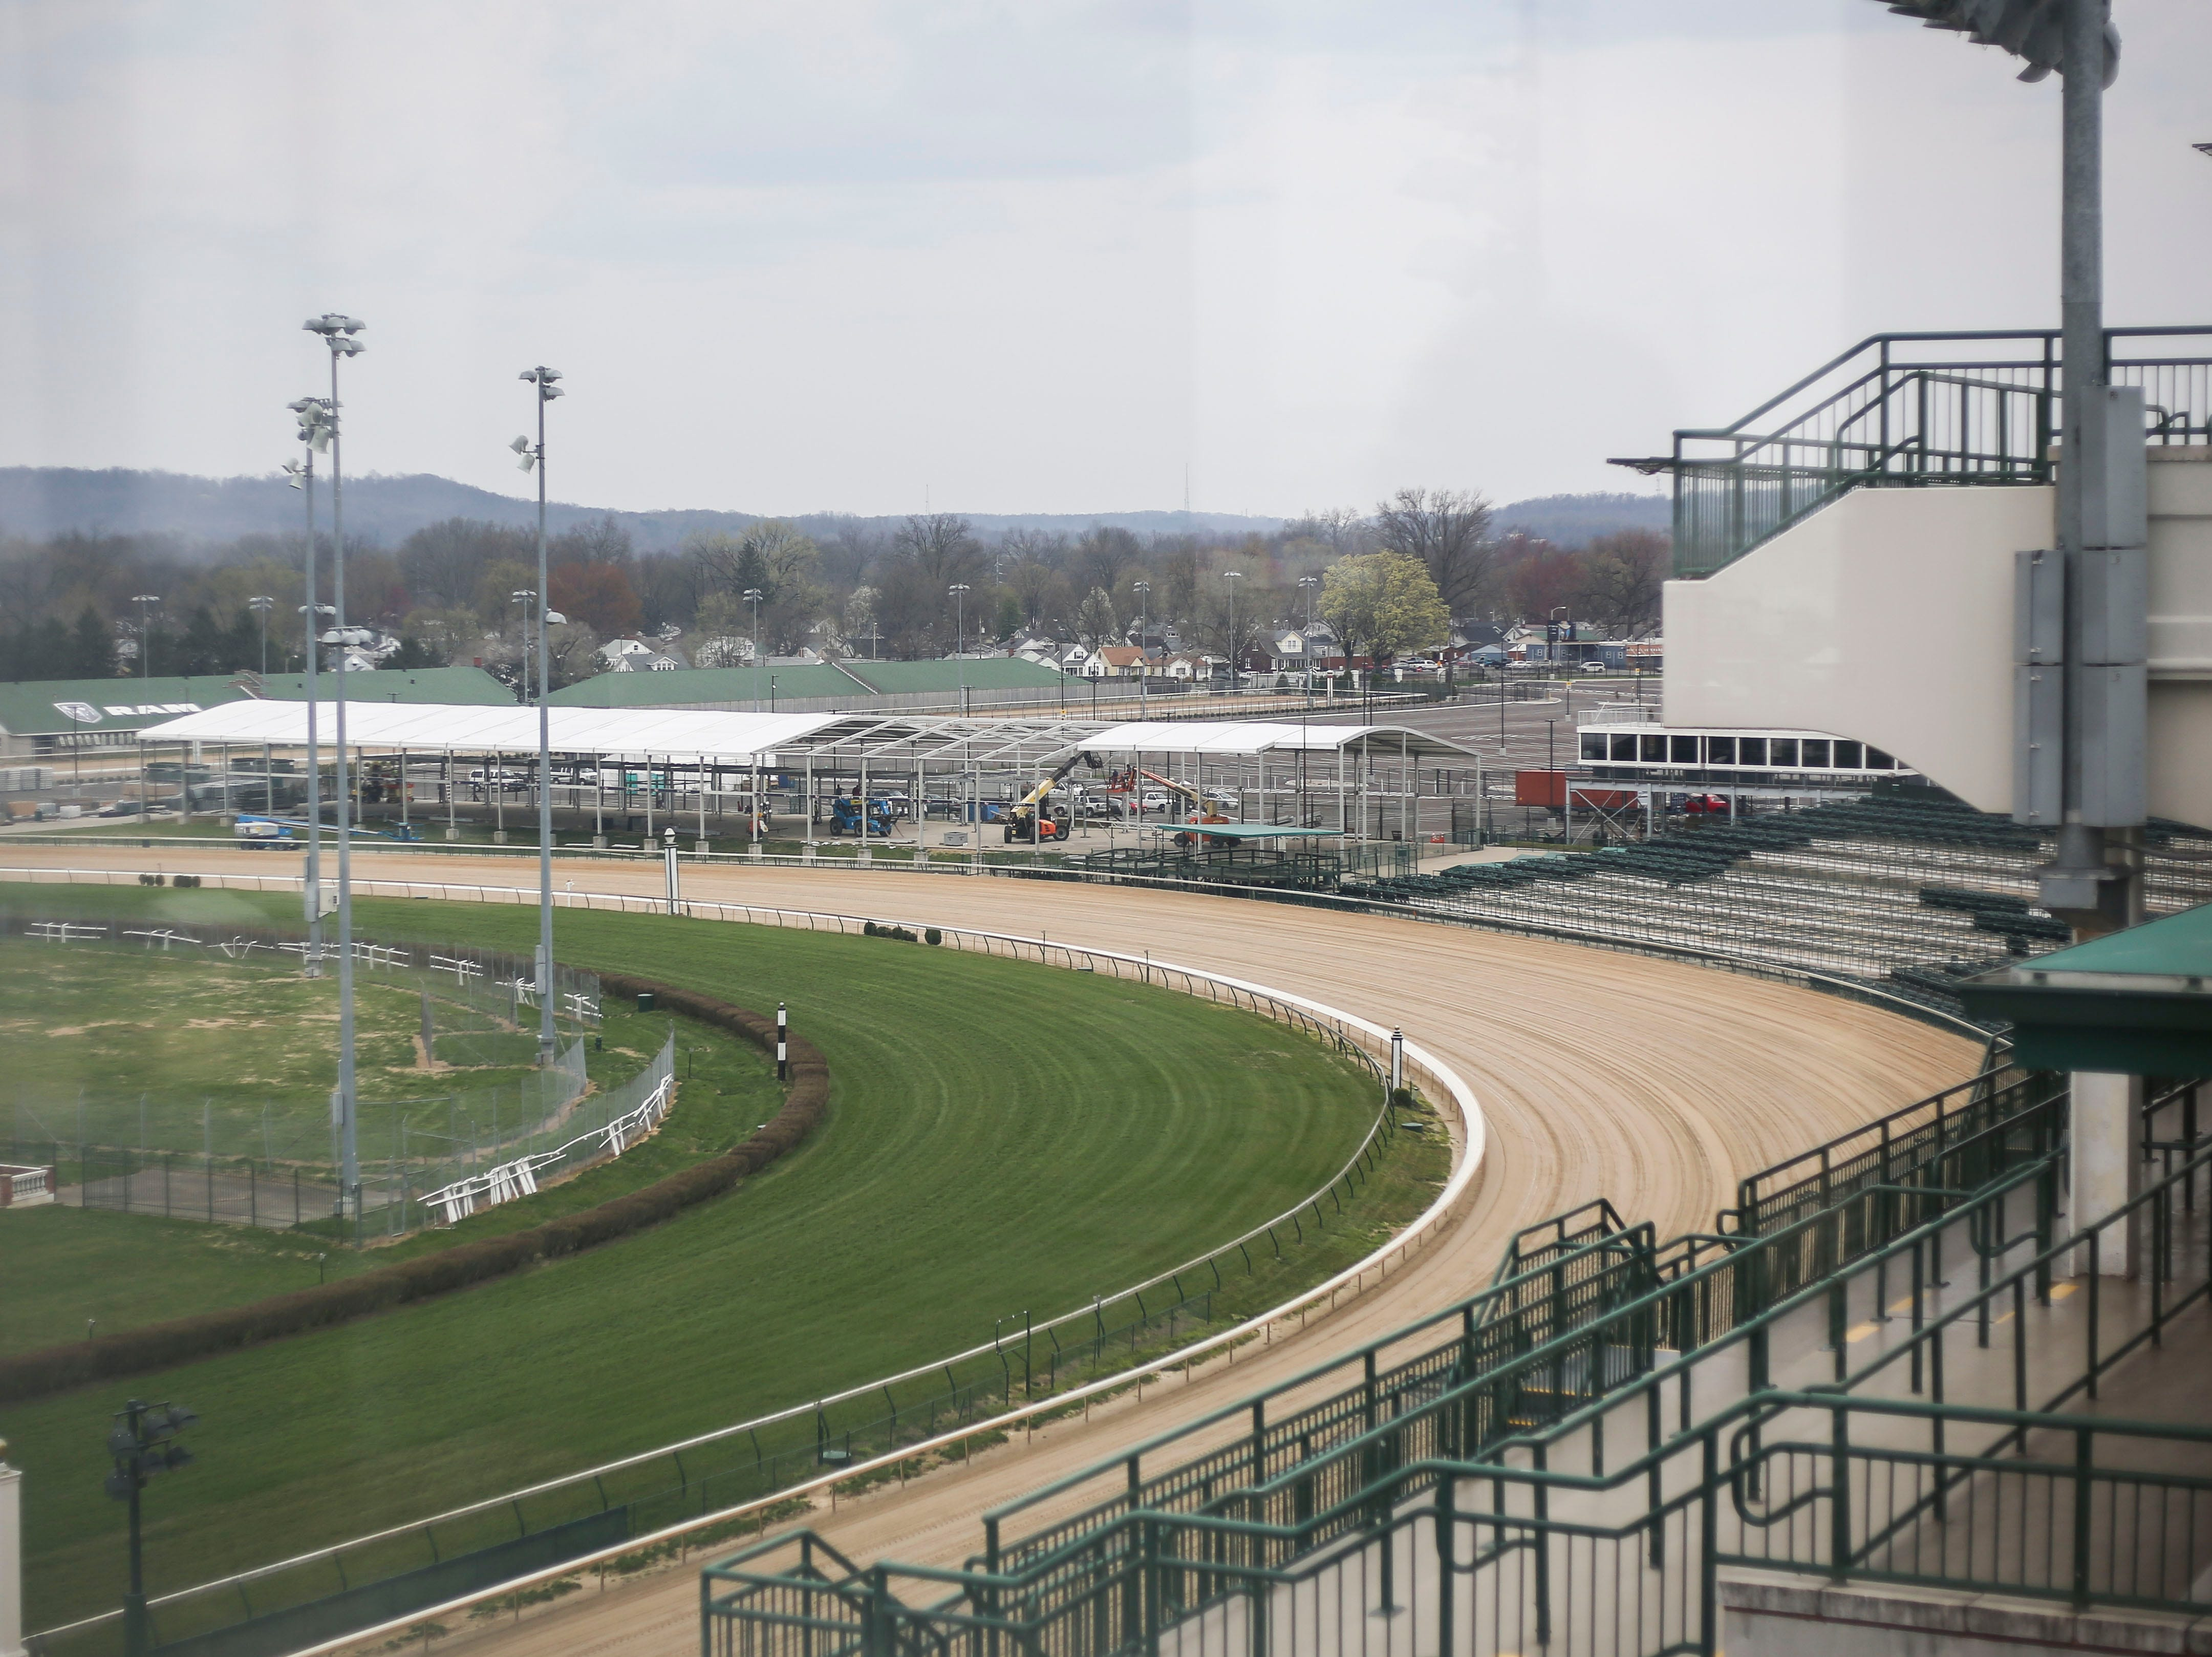 The racetrack can be seen through the window of one of the spires at Churchill Downs where a new charred oak barrel aging simple syrup made from Hosey Honey, locally made in Midland, Ky., limestone water, and mint sprigs grown on the grounds of Churchill Downs, in Louisville, Ky. on Thursday, March 5, 2019.